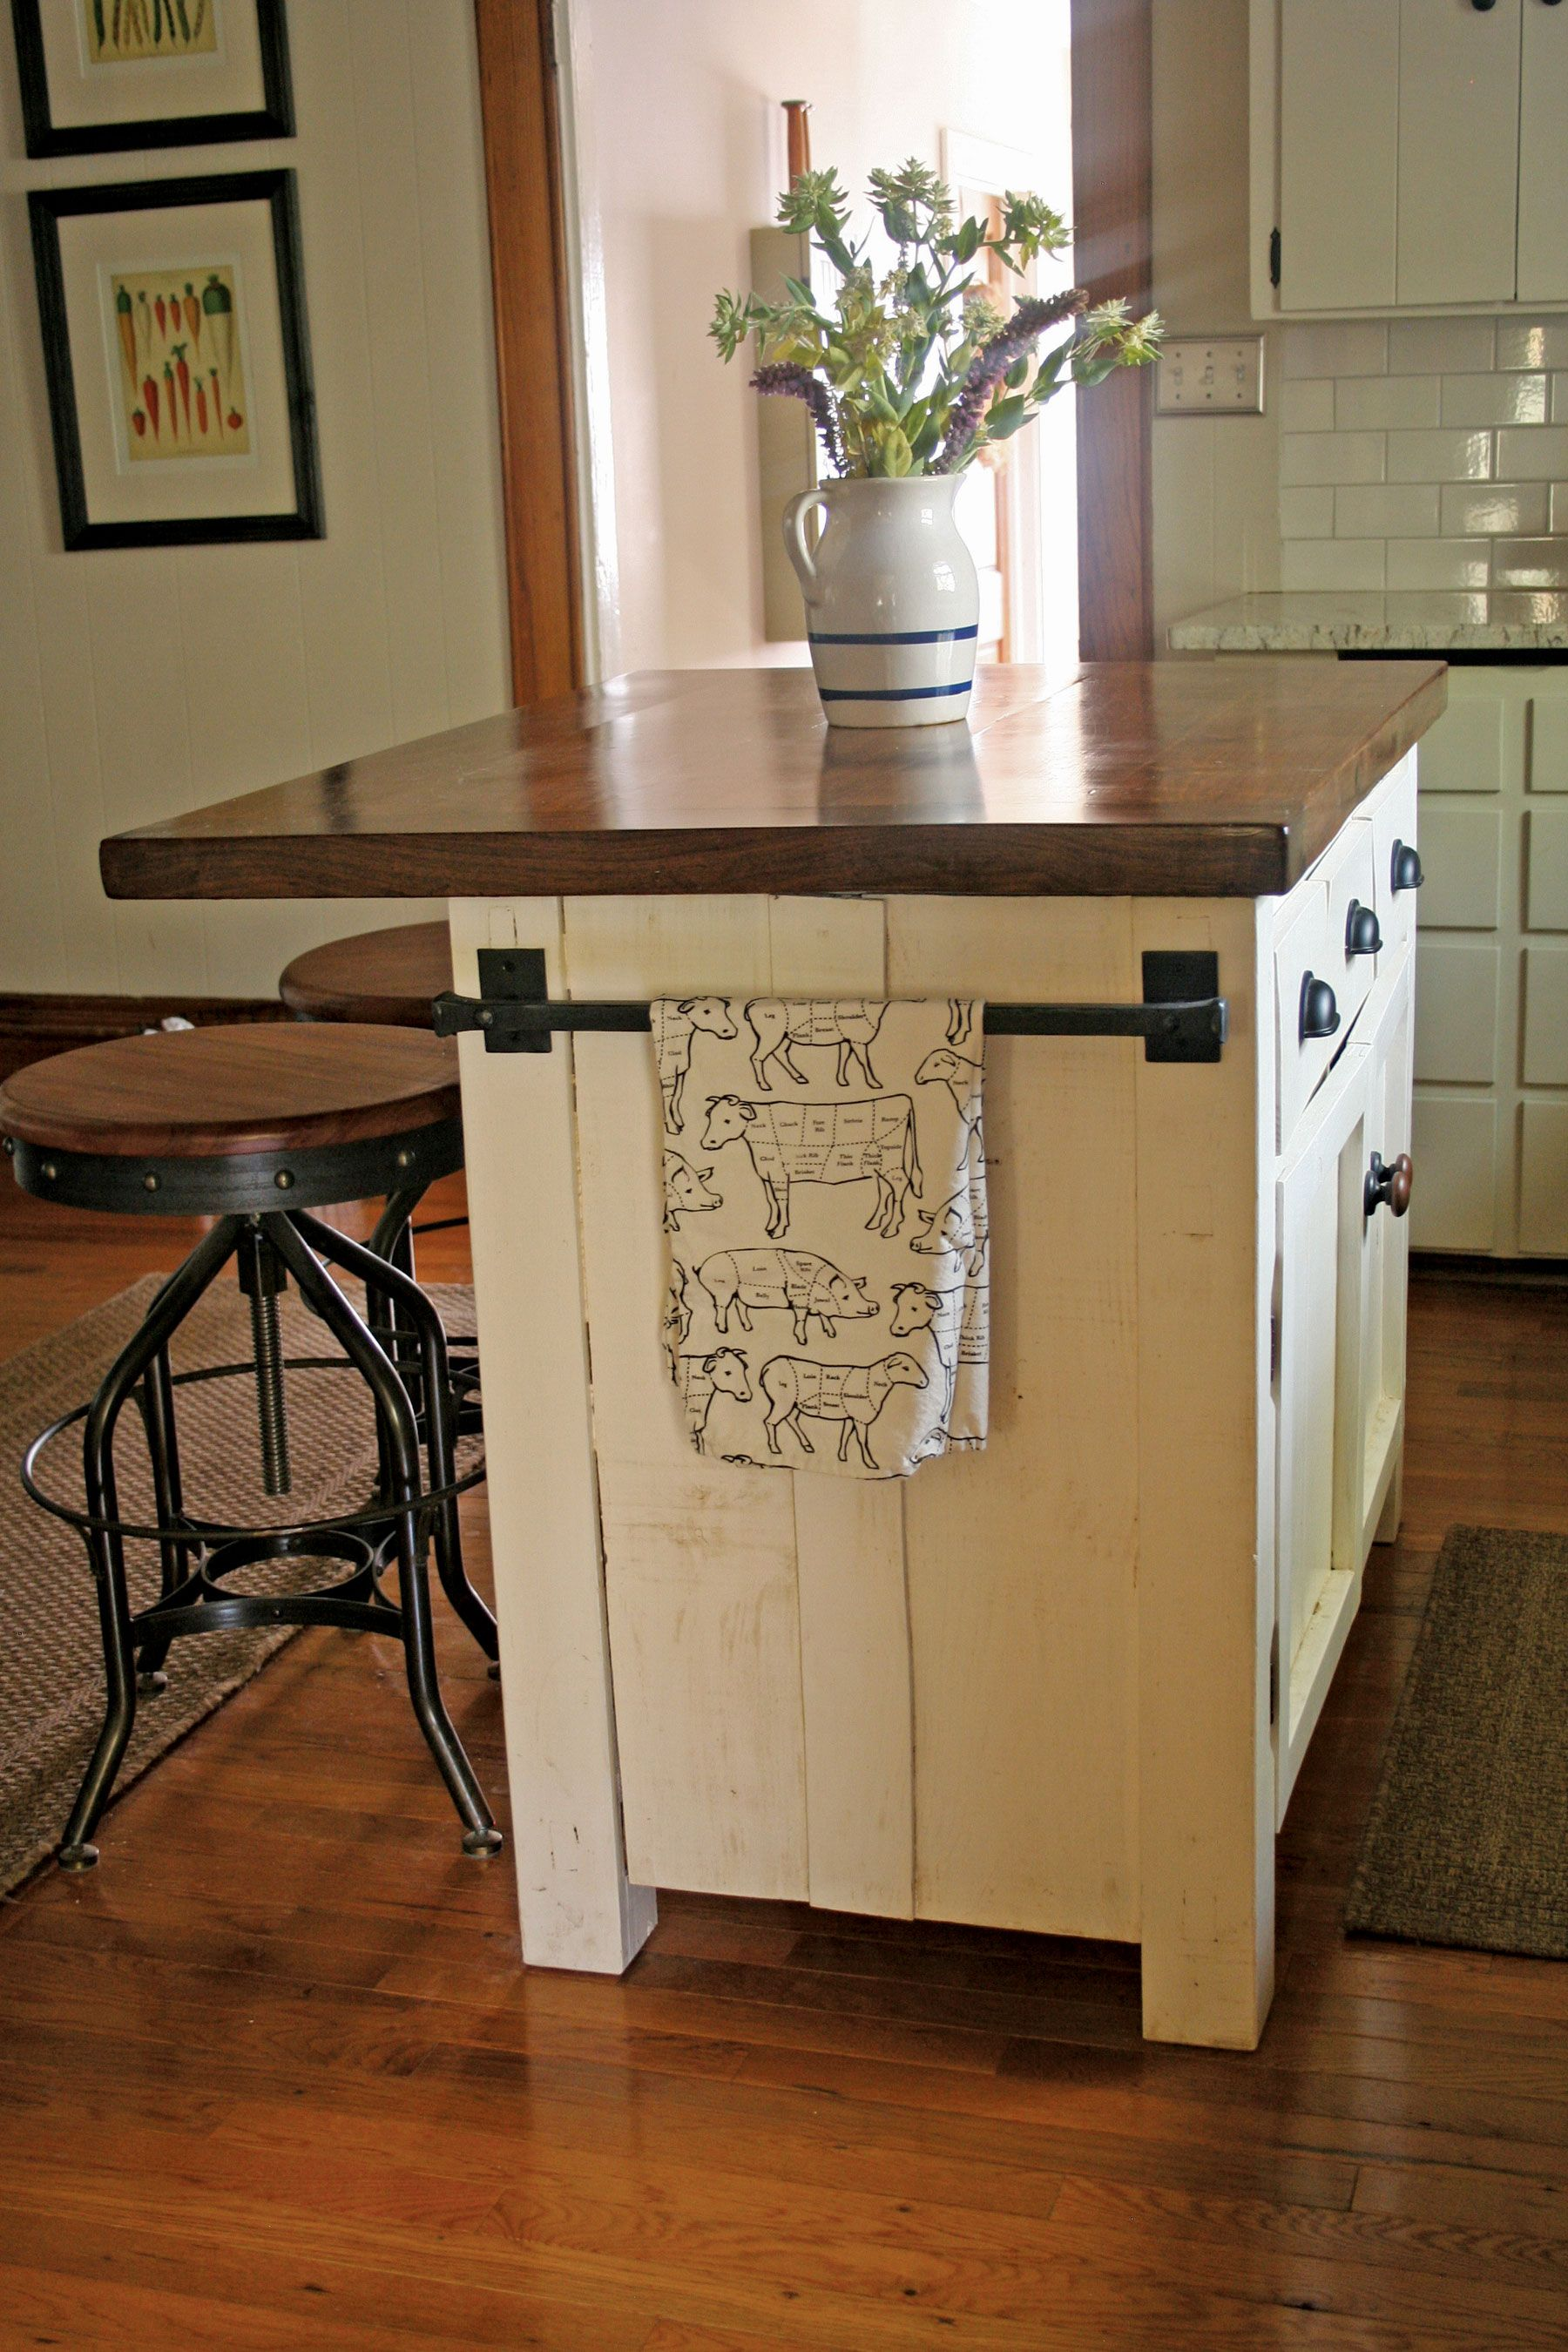 15 Wonderful DIY ideas to Upgrade the Kitchen 13